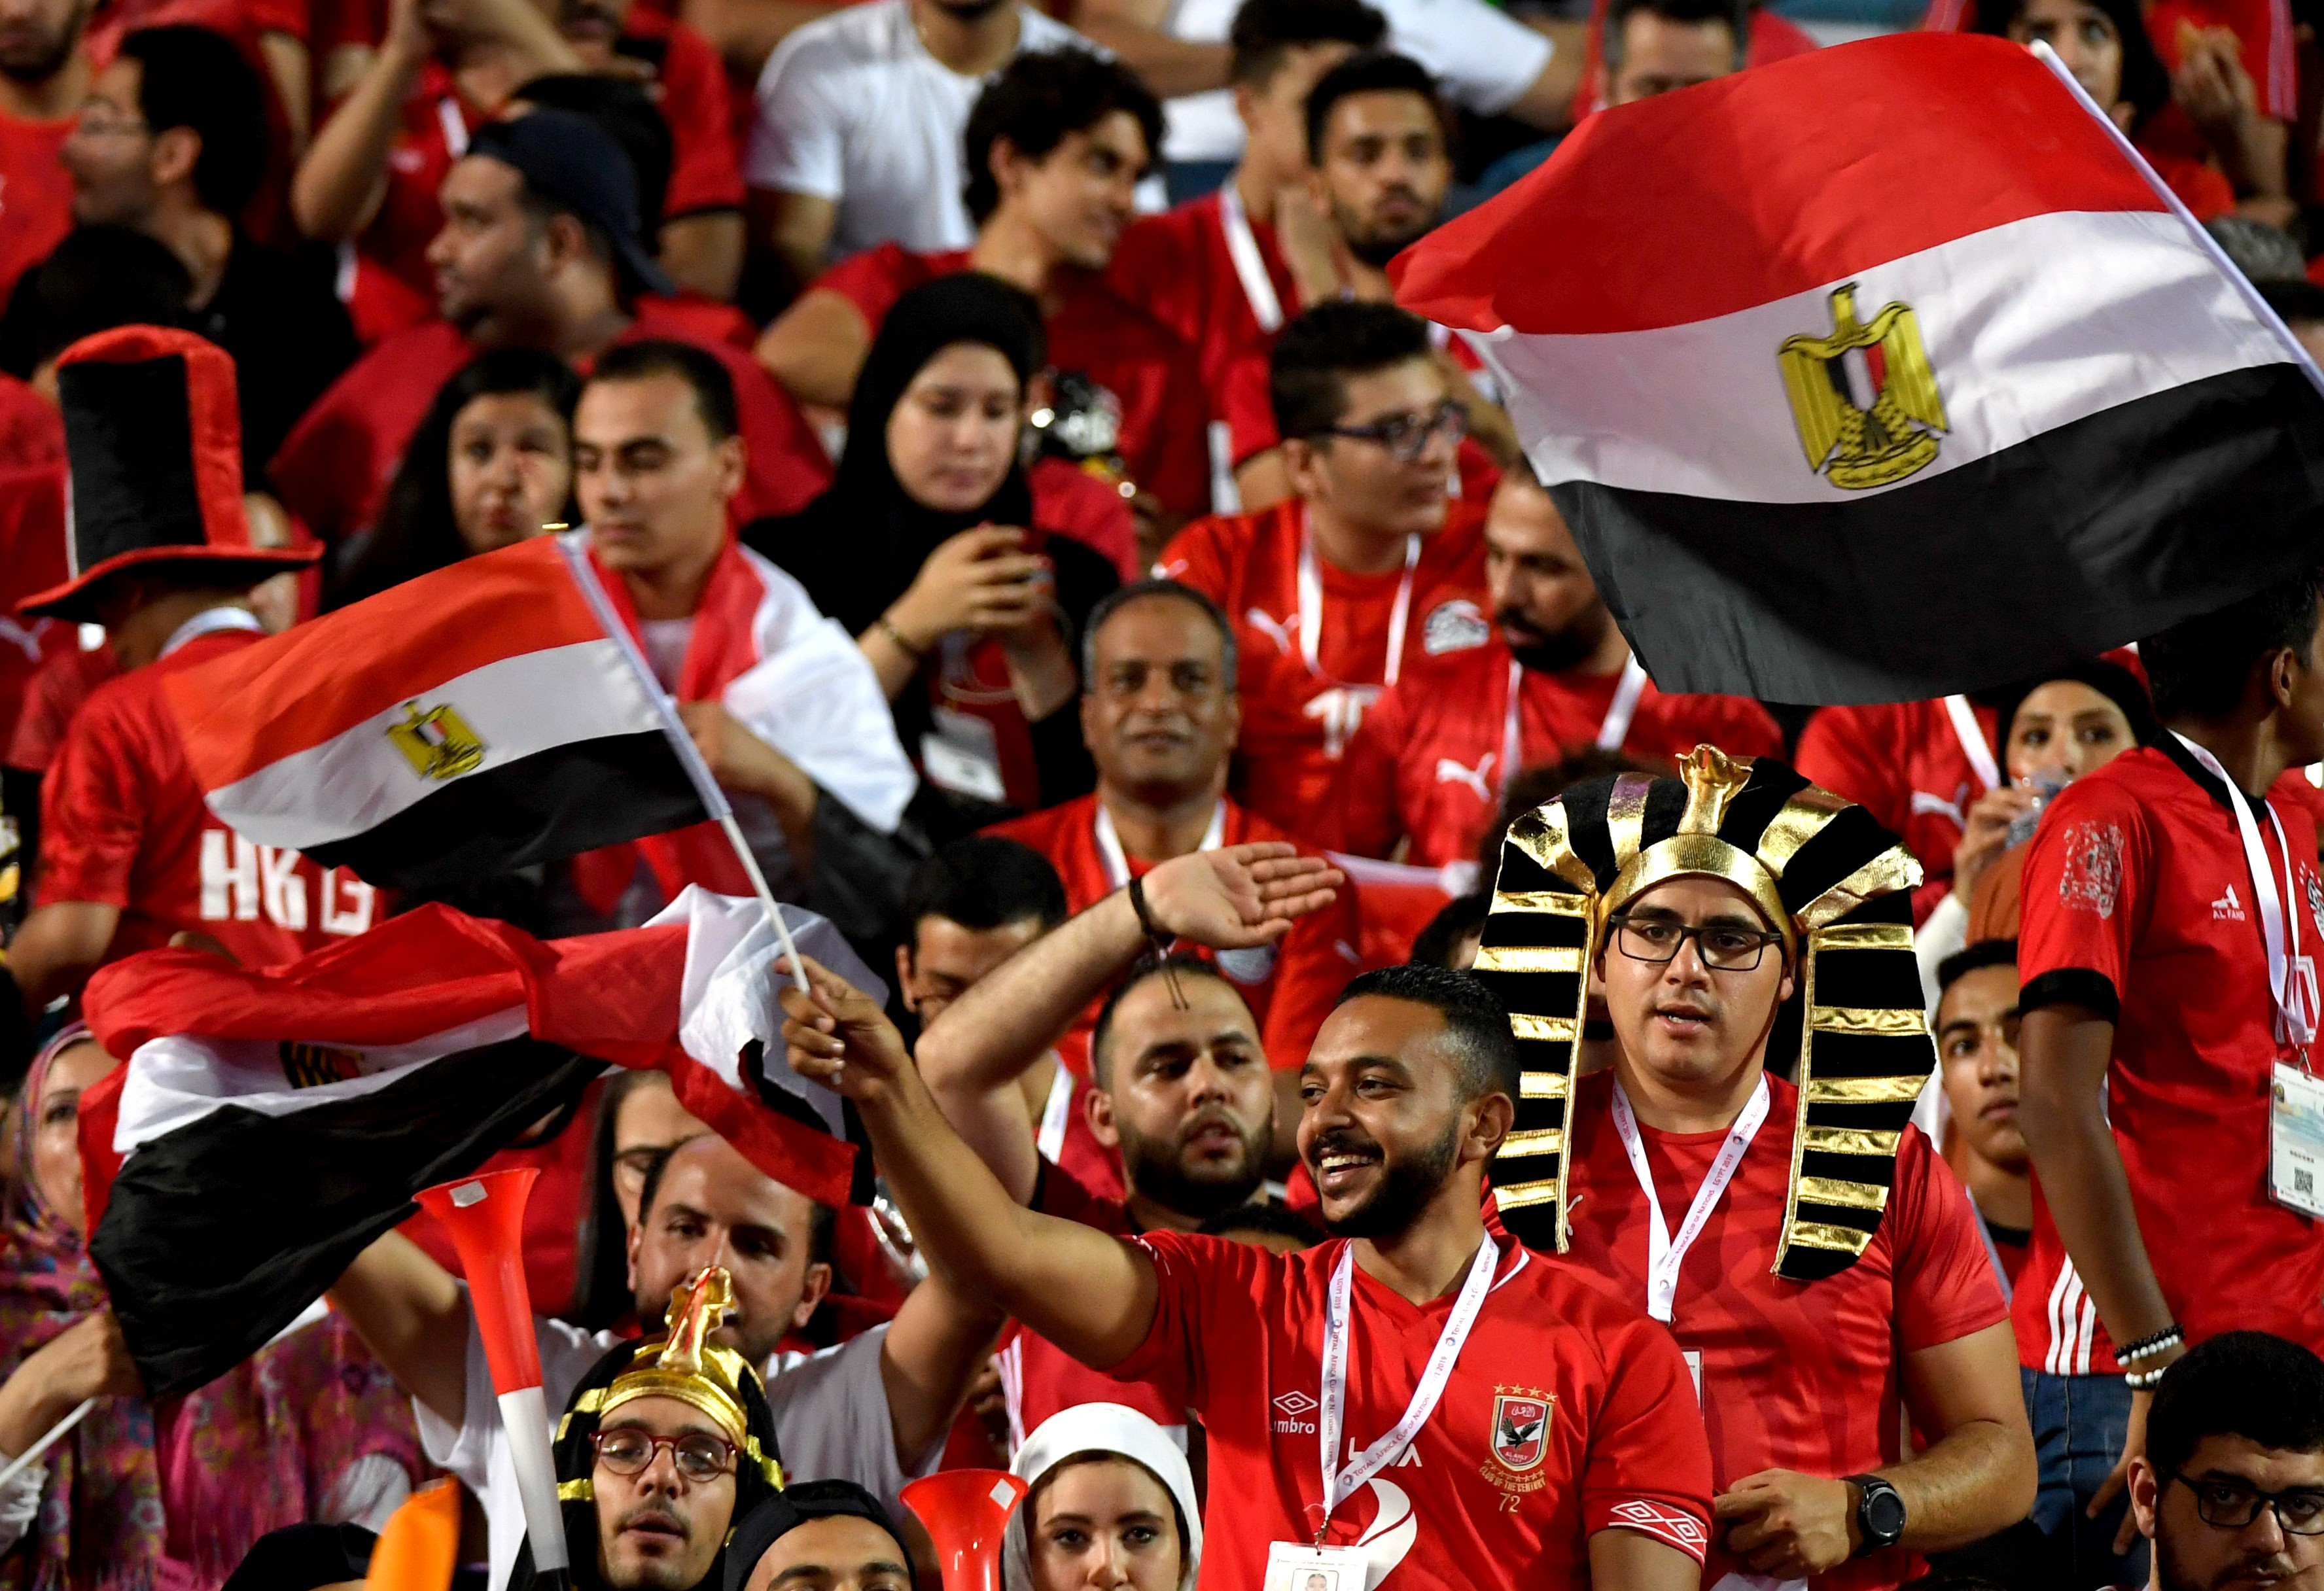 Egypt's fans cheer for their team prior to the 2019 Africa Cup of Nations (CAN) football match between Egypt and DR Congo at the Cairo International Stadium on 26 June (AFP)